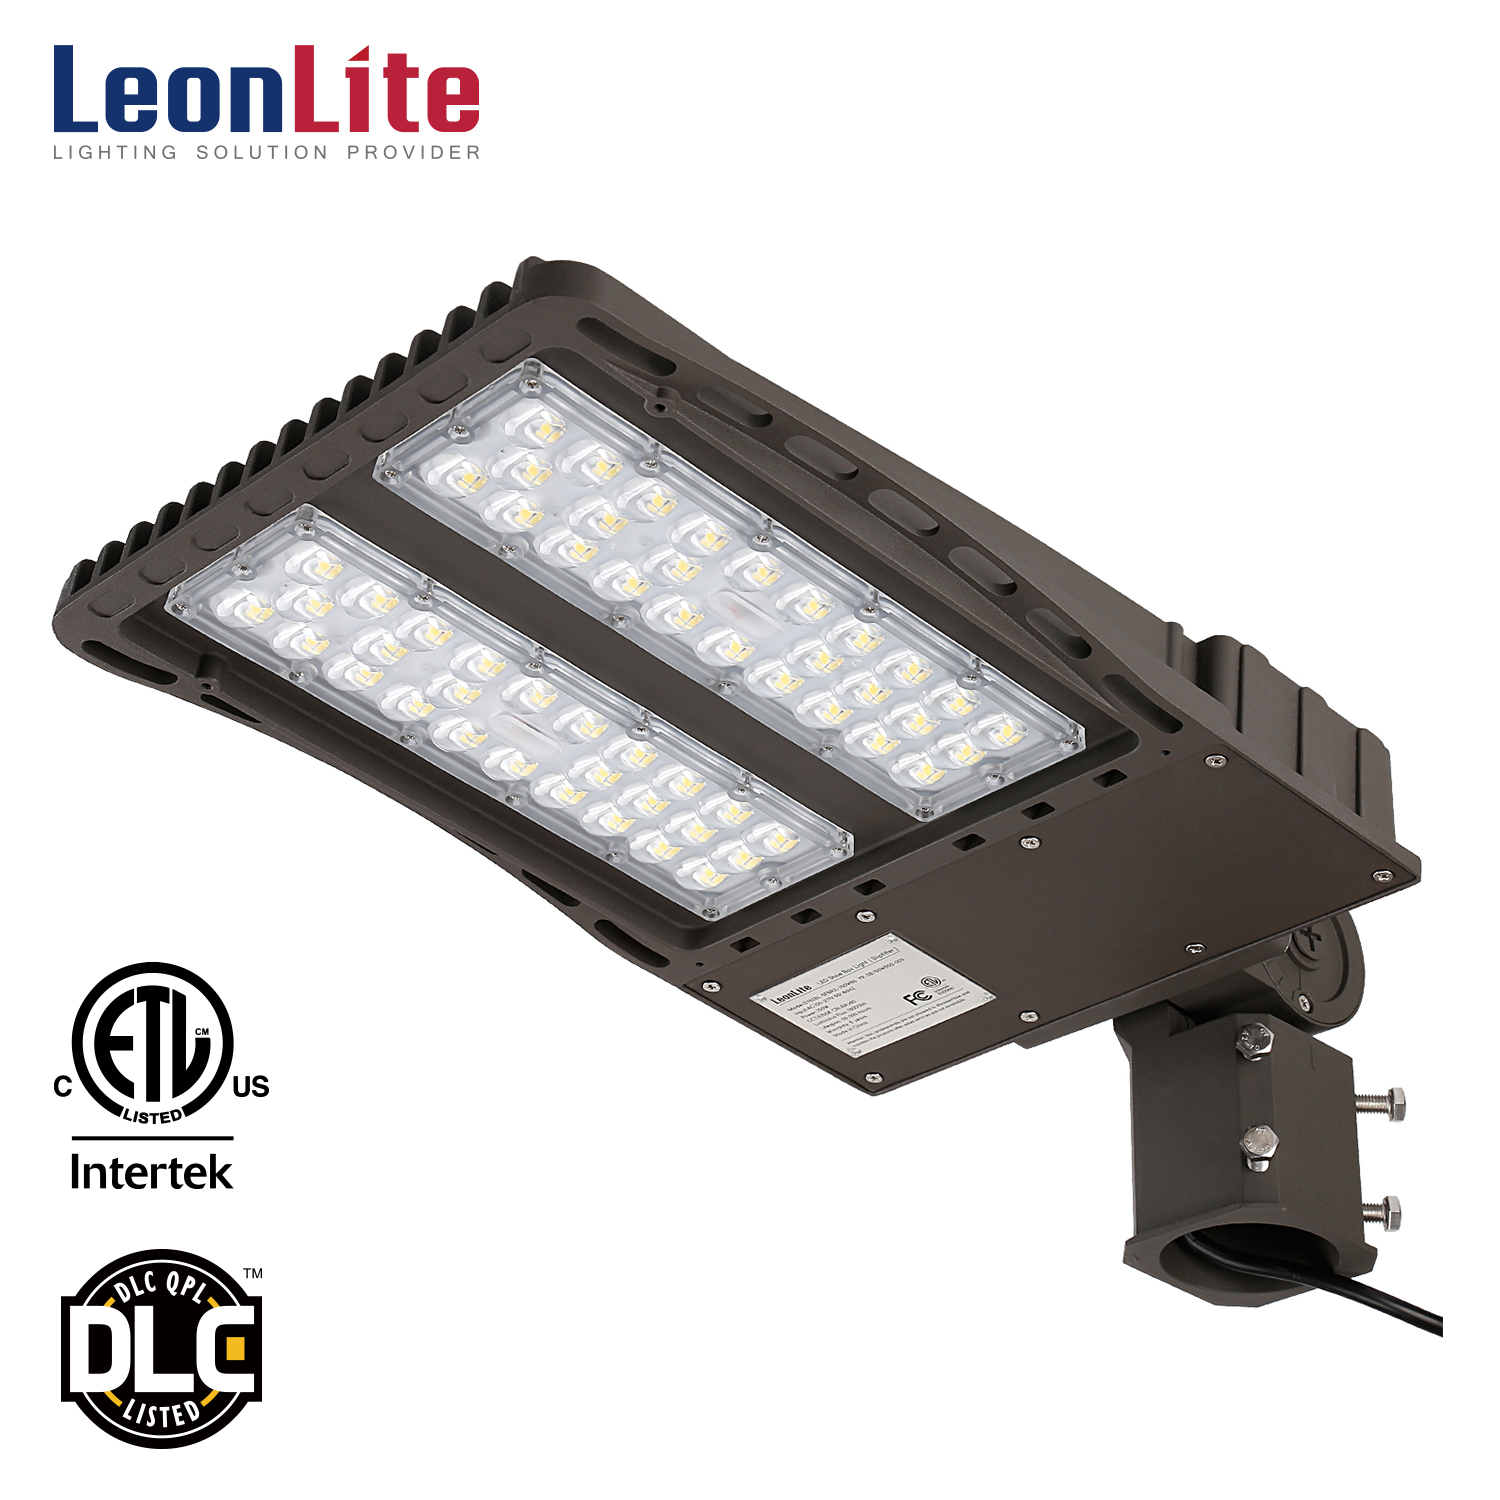 LEONLITE 18000lm Ultra Bright LED Parking Lot Light With